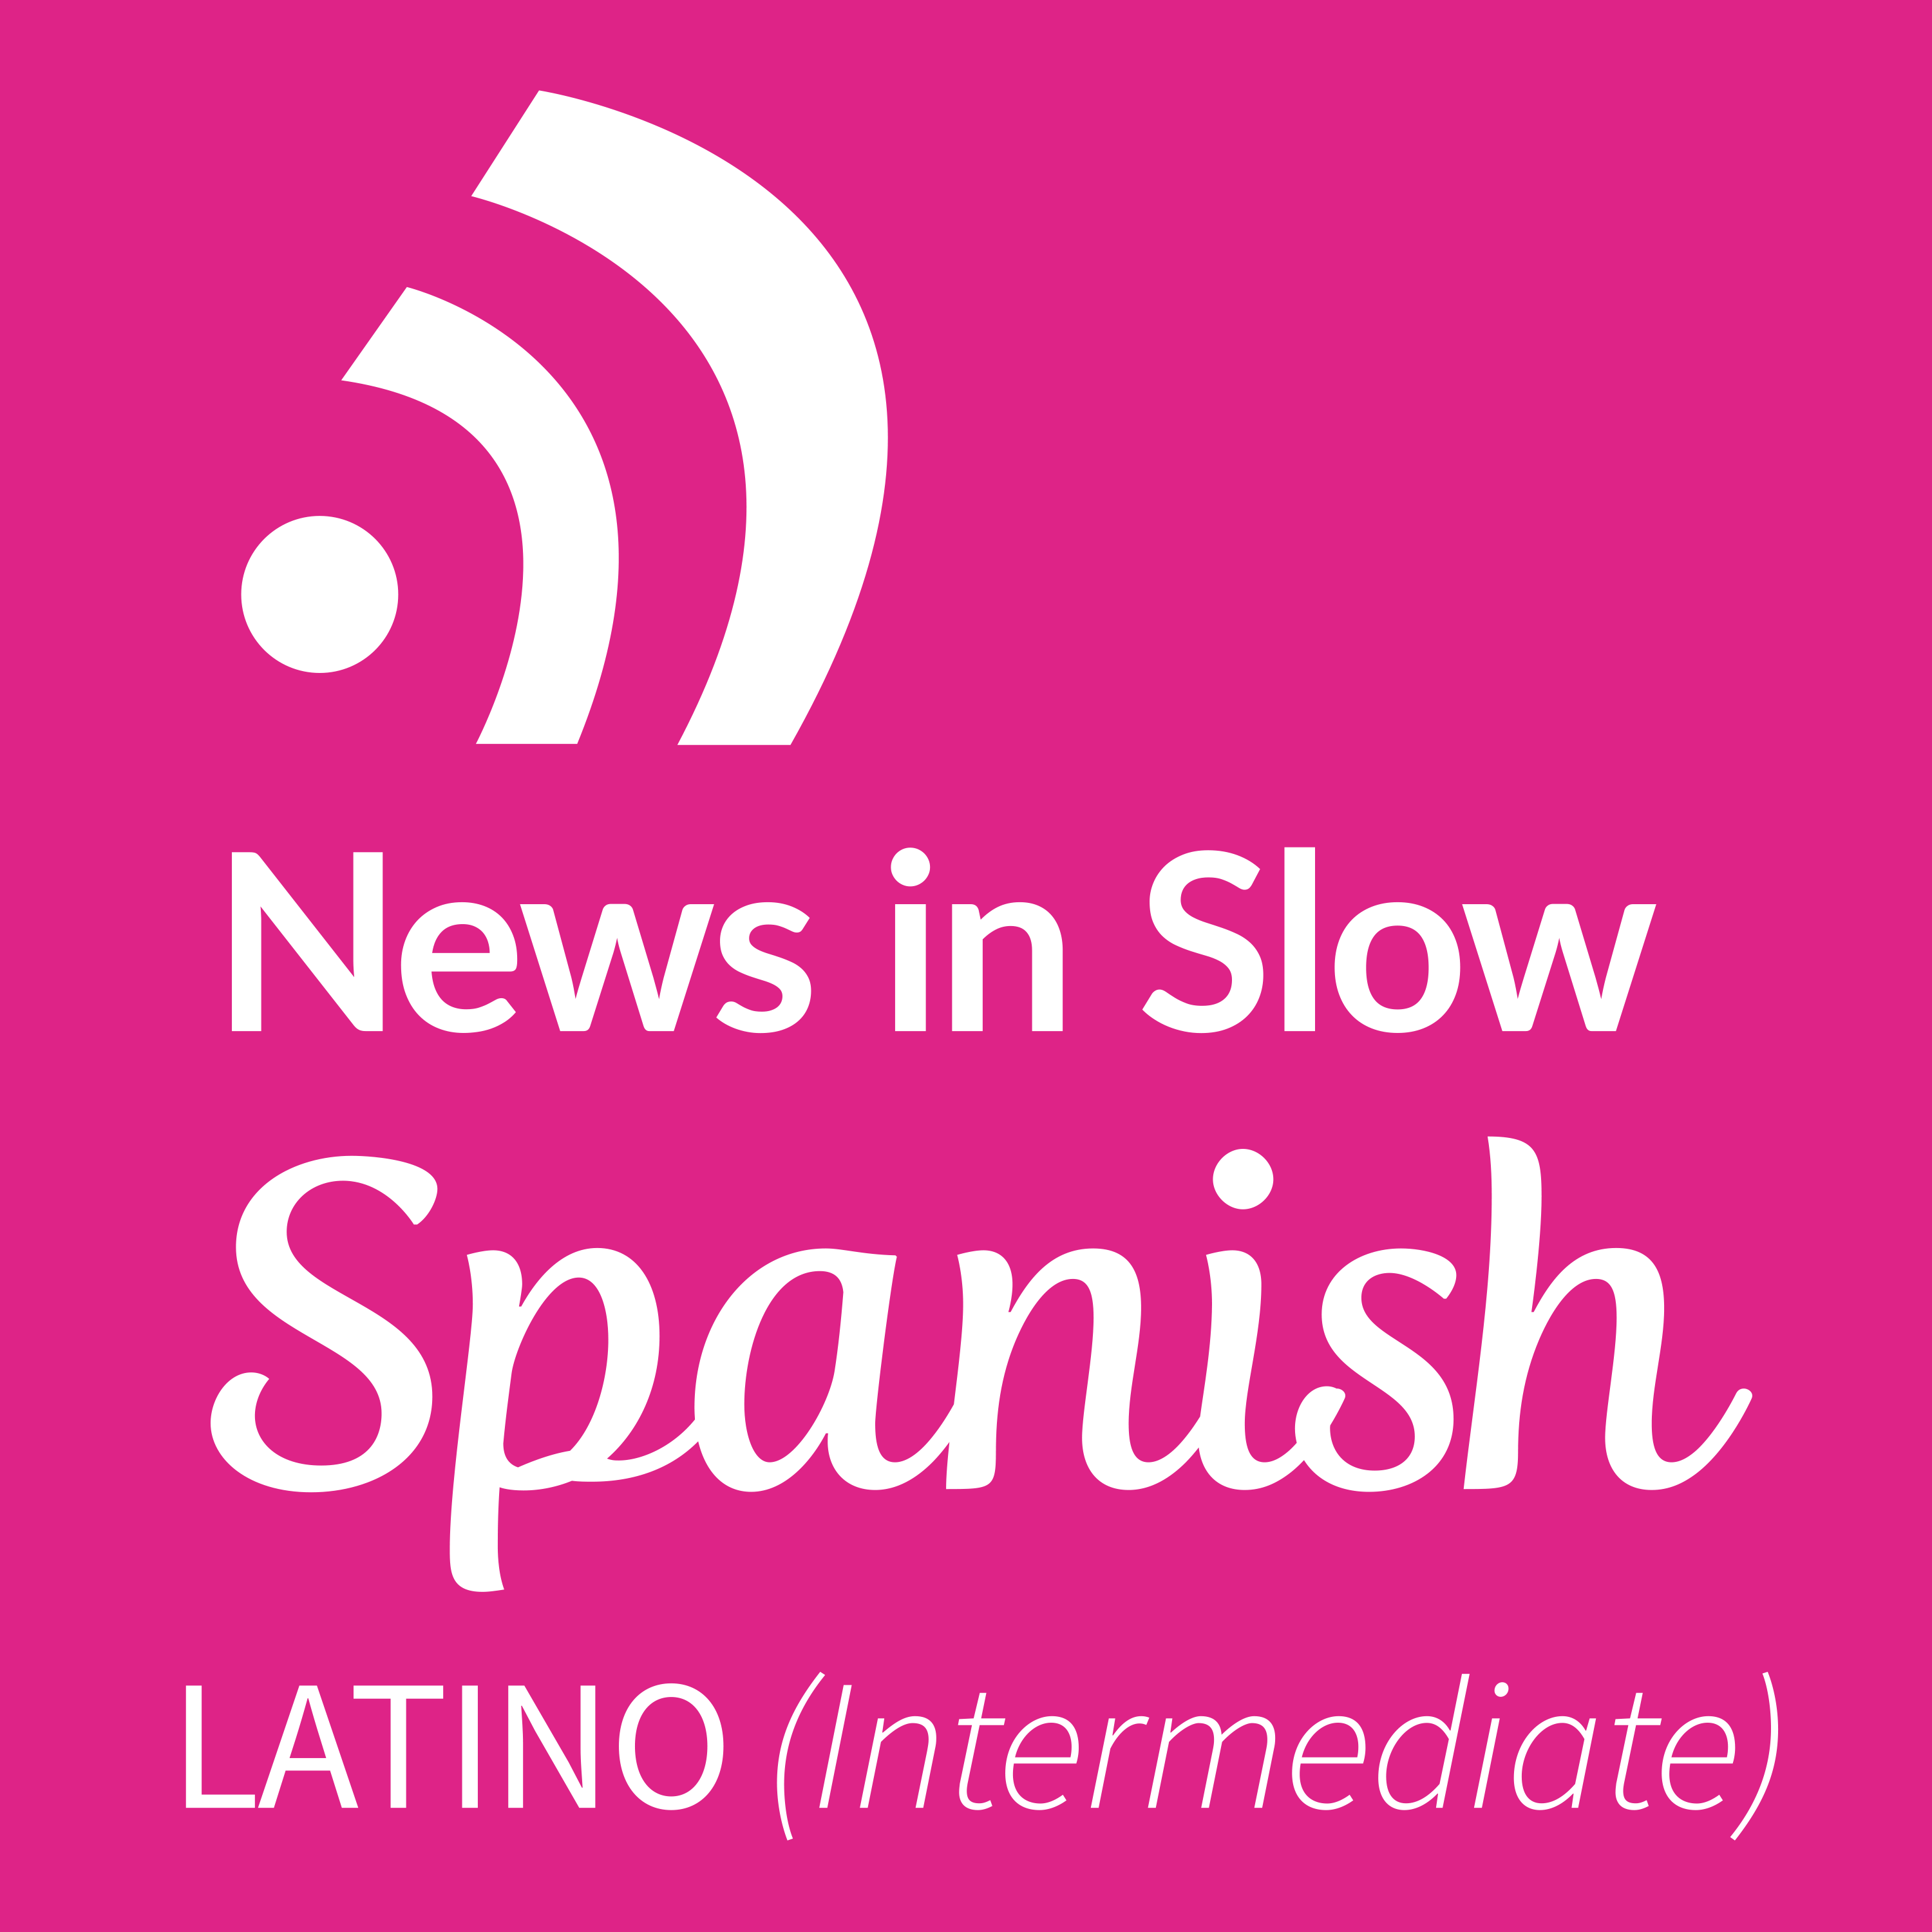 News in Slow Spanish Latino - # 136 - Spanish grammar, news and expressions